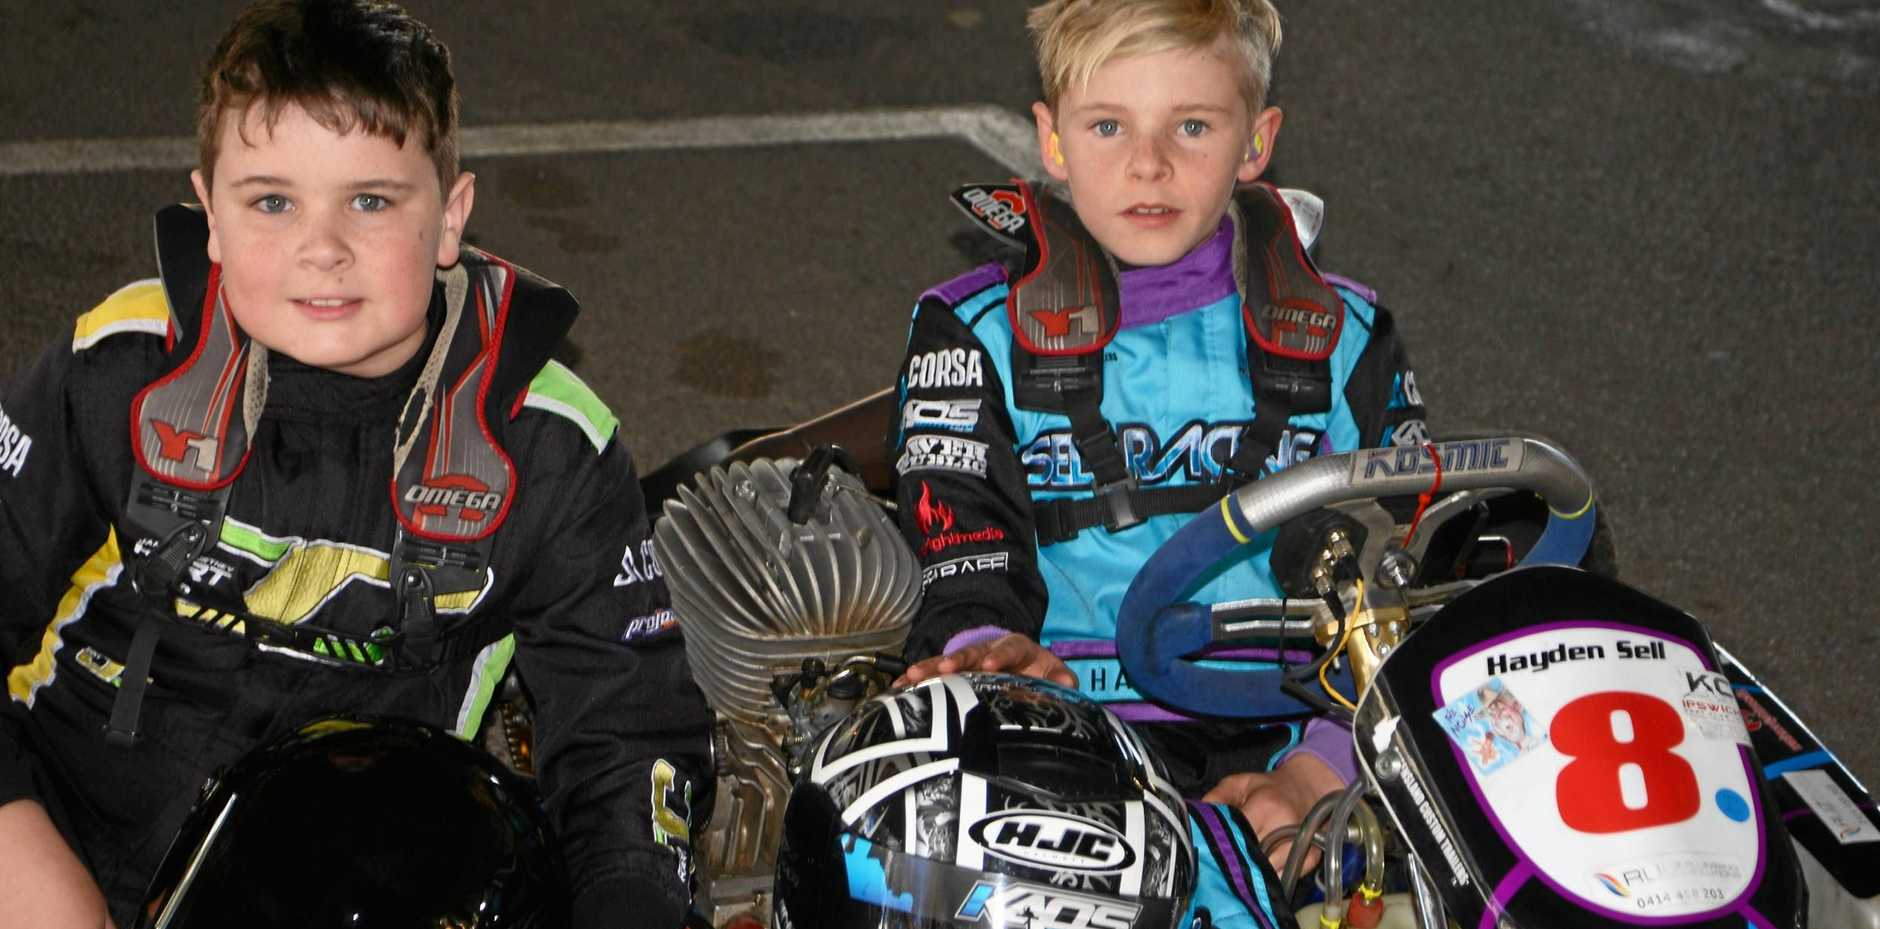 BUDDING RIDERS: Warwick Karting Club members Jayden O'Dea and Hayden Sell were two of the drivers in last year's Queensland Junior Top Guns at Sandy Creek Raceway.